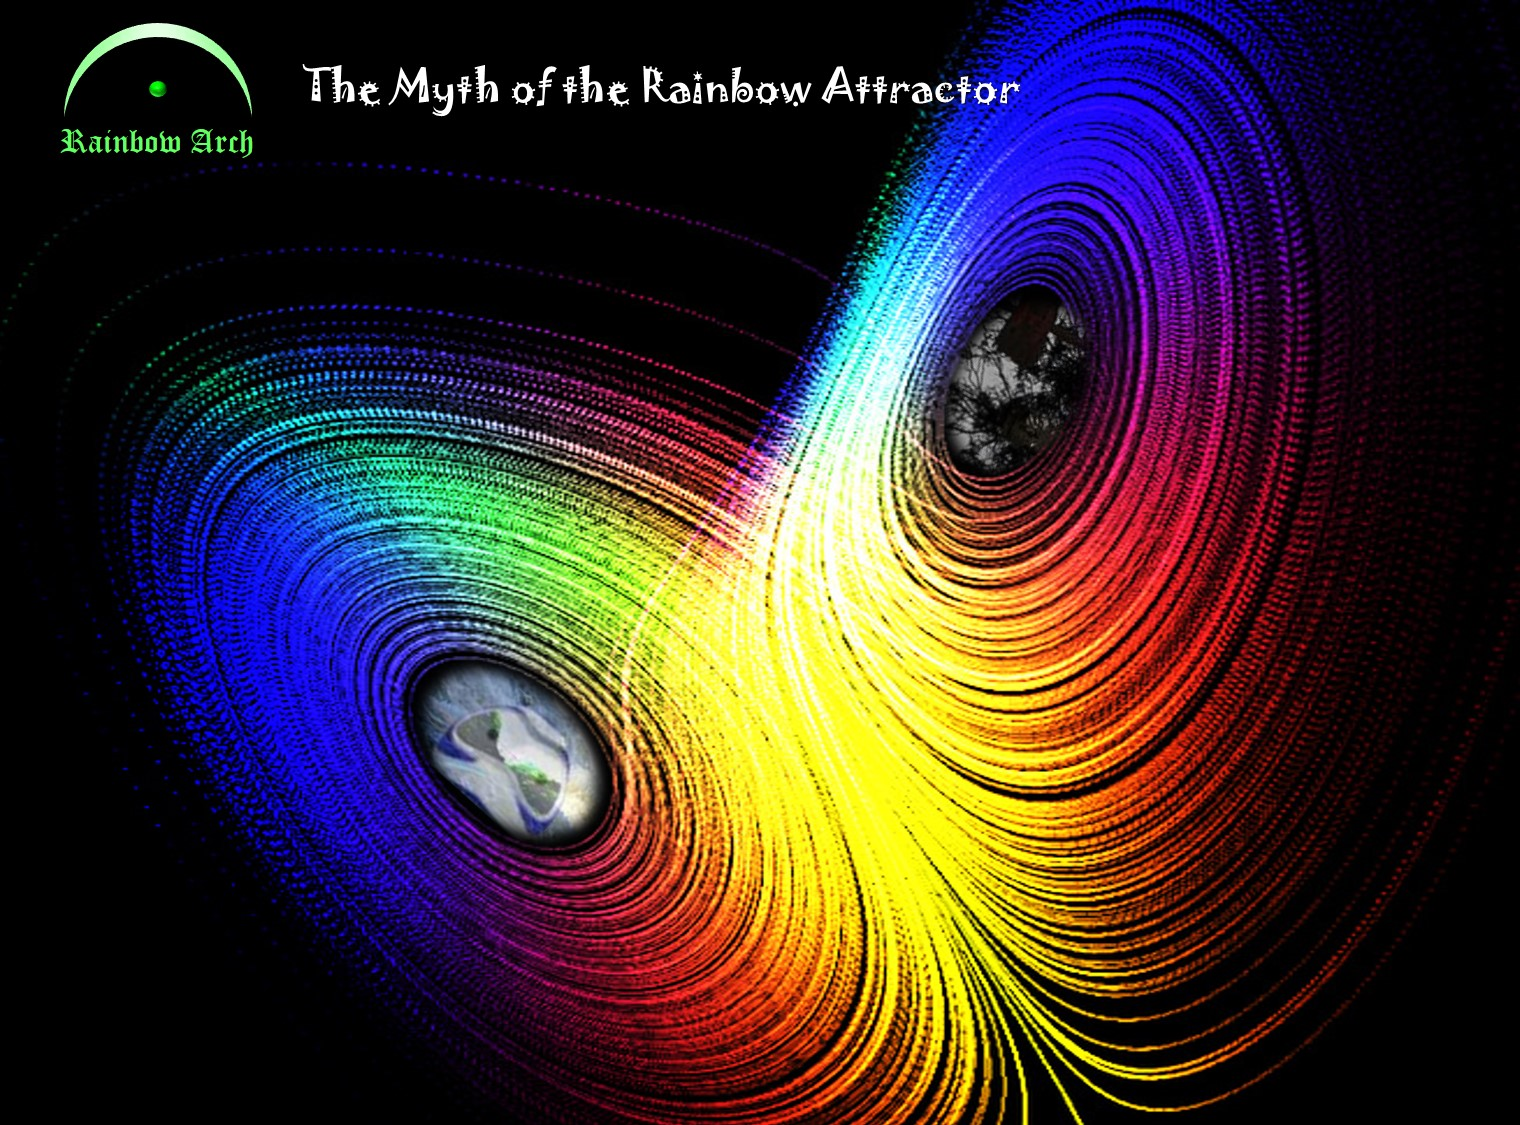 The Myth of the Rainbow Attractor